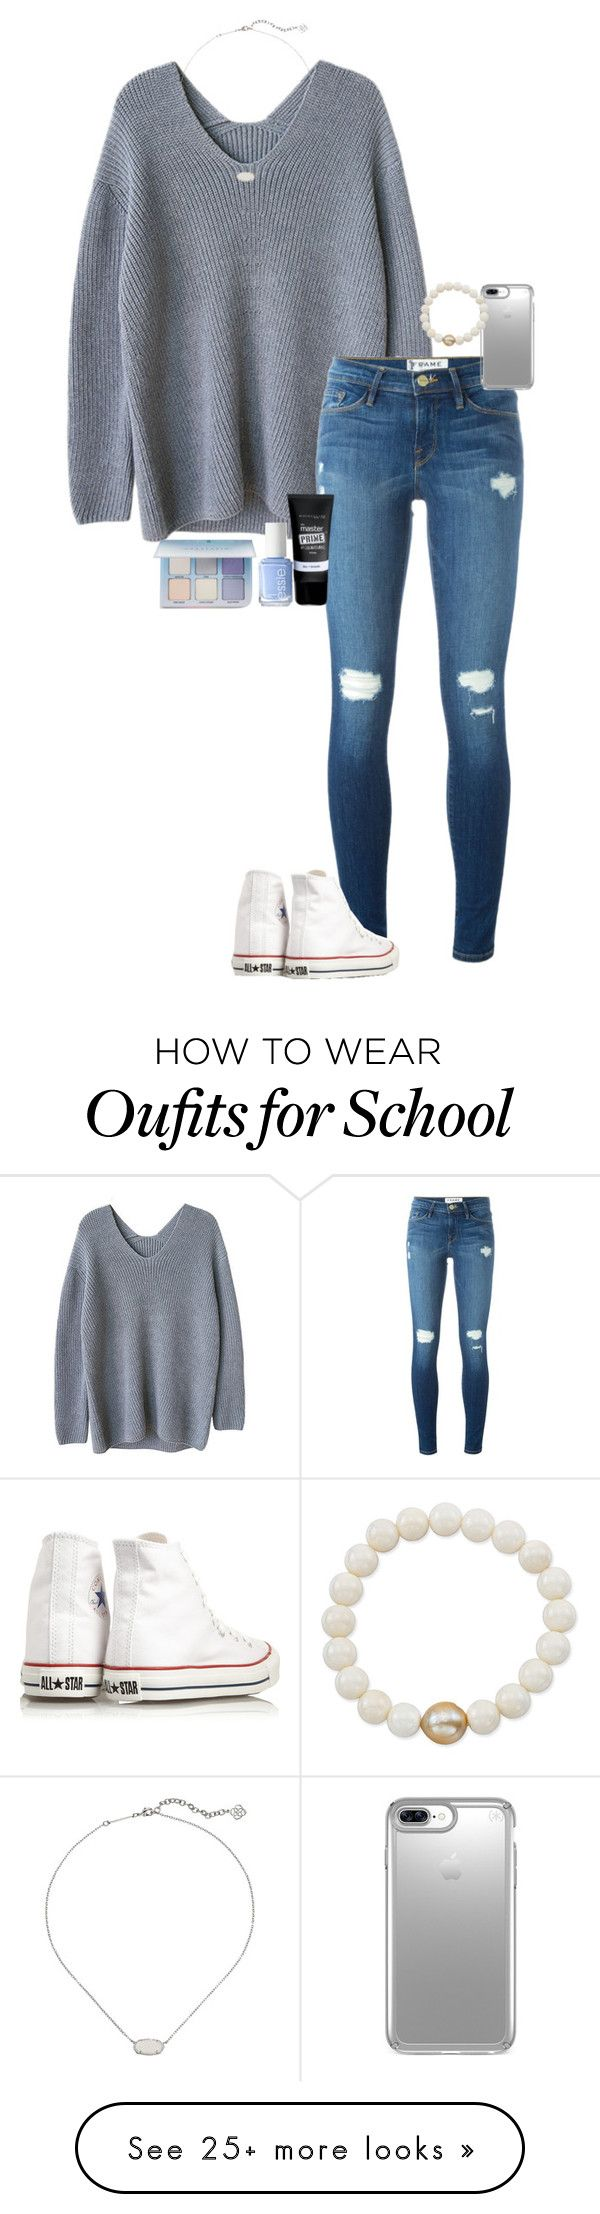 """what language are u taking in school?"" by gabyleoni on Polyvore featuring Frame, Maybelline, Converse, Essie, Anastasia Beverly Hills, Kendra Scott, Speck and Anne Sisteron"